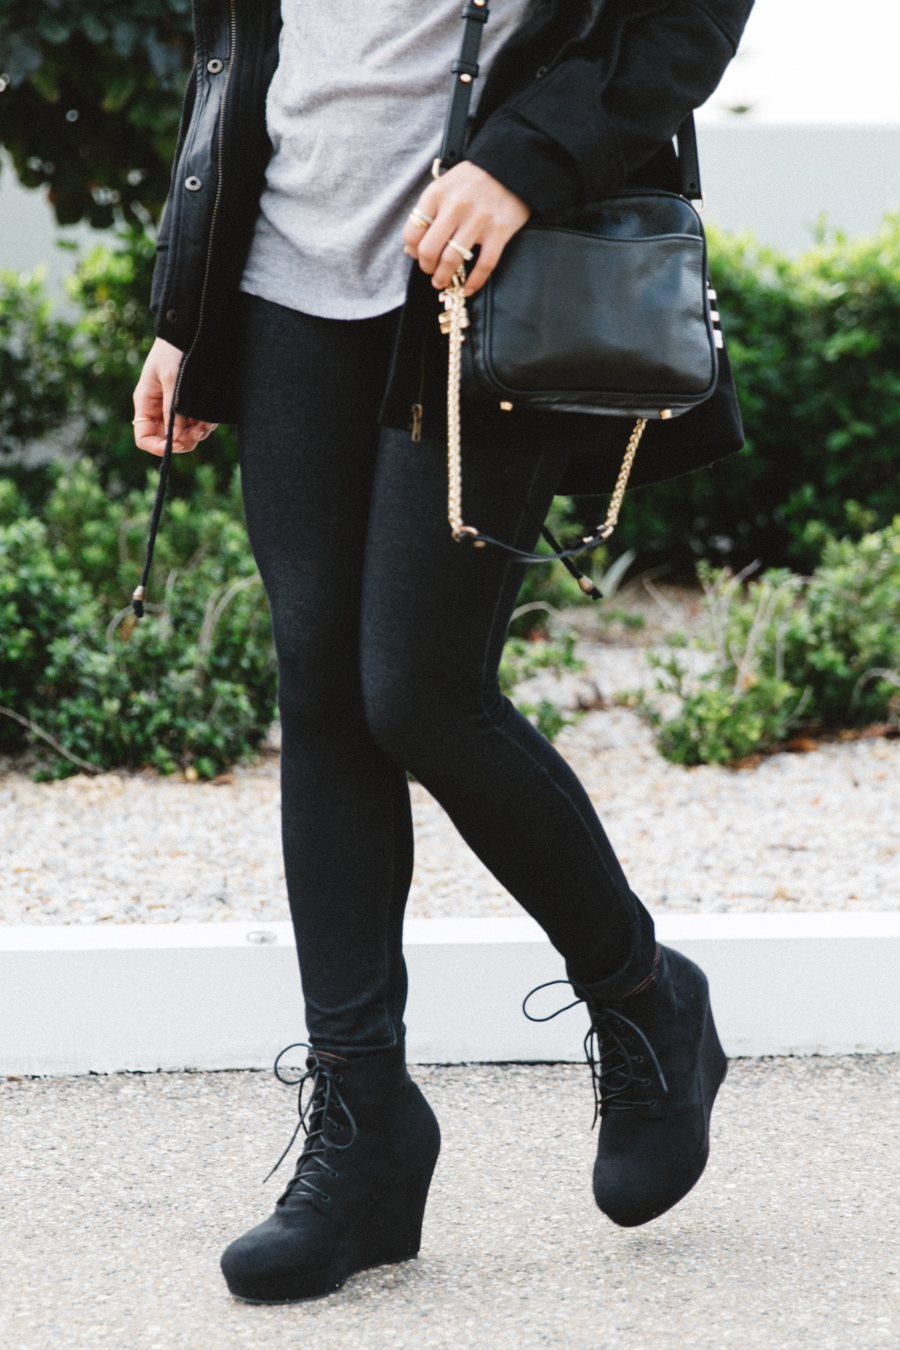 Perth winter street style. Jeggings street style with wedge boots & Dylan Kain bag.